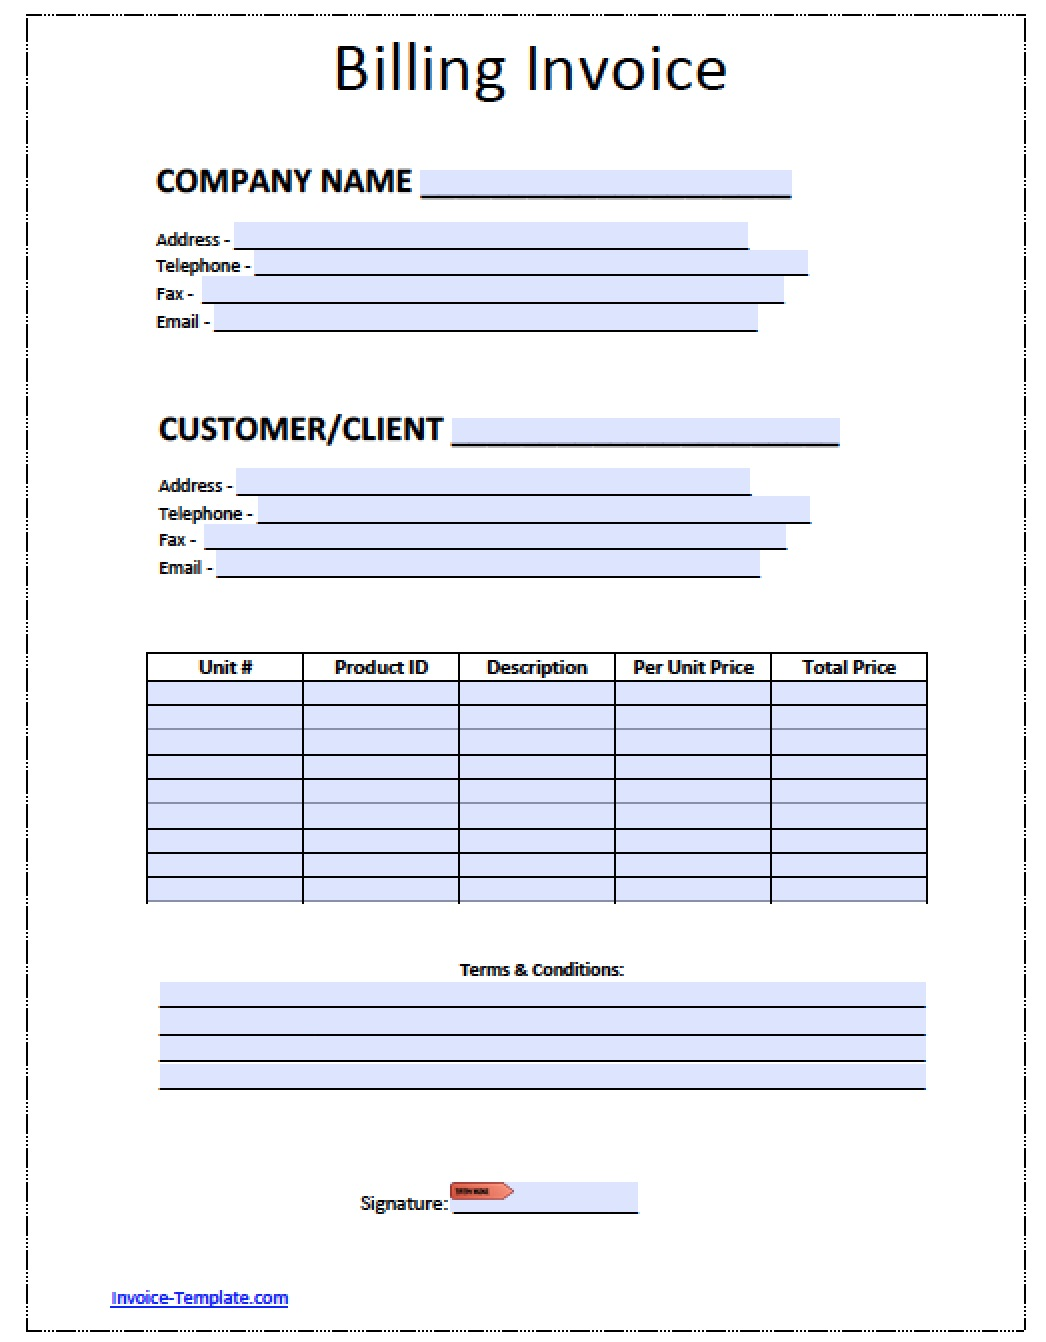 Centralasianshepherdus  Surprising Billing Invoice Invoices Faq U Cloudflare Support Billing  With Lovable Free Billing Invoice Template  Excel  Pdf  Word Doc  Billing With Adorable Receipt Maker Software Free Download Also What Is Cash Receipts In Accounting In Addition Kindly Acknowledge Receipt And Asda Price Guarantee Enter Receipt As Well As Book Bill Receipt Format Additionally Printing Receipt From Happytomco With Centralasianshepherdus  Lovable Billing Invoice Invoices Faq U Cloudflare Support Billing  With Adorable Free Billing Invoice Template  Excel  Pdf  Word Doc  Billing And Surprising Receipt Maker Software Free Download Also What Is Cash Receipts In Accounting In Addition Kindly Acknowledge Receipt From Happytomco